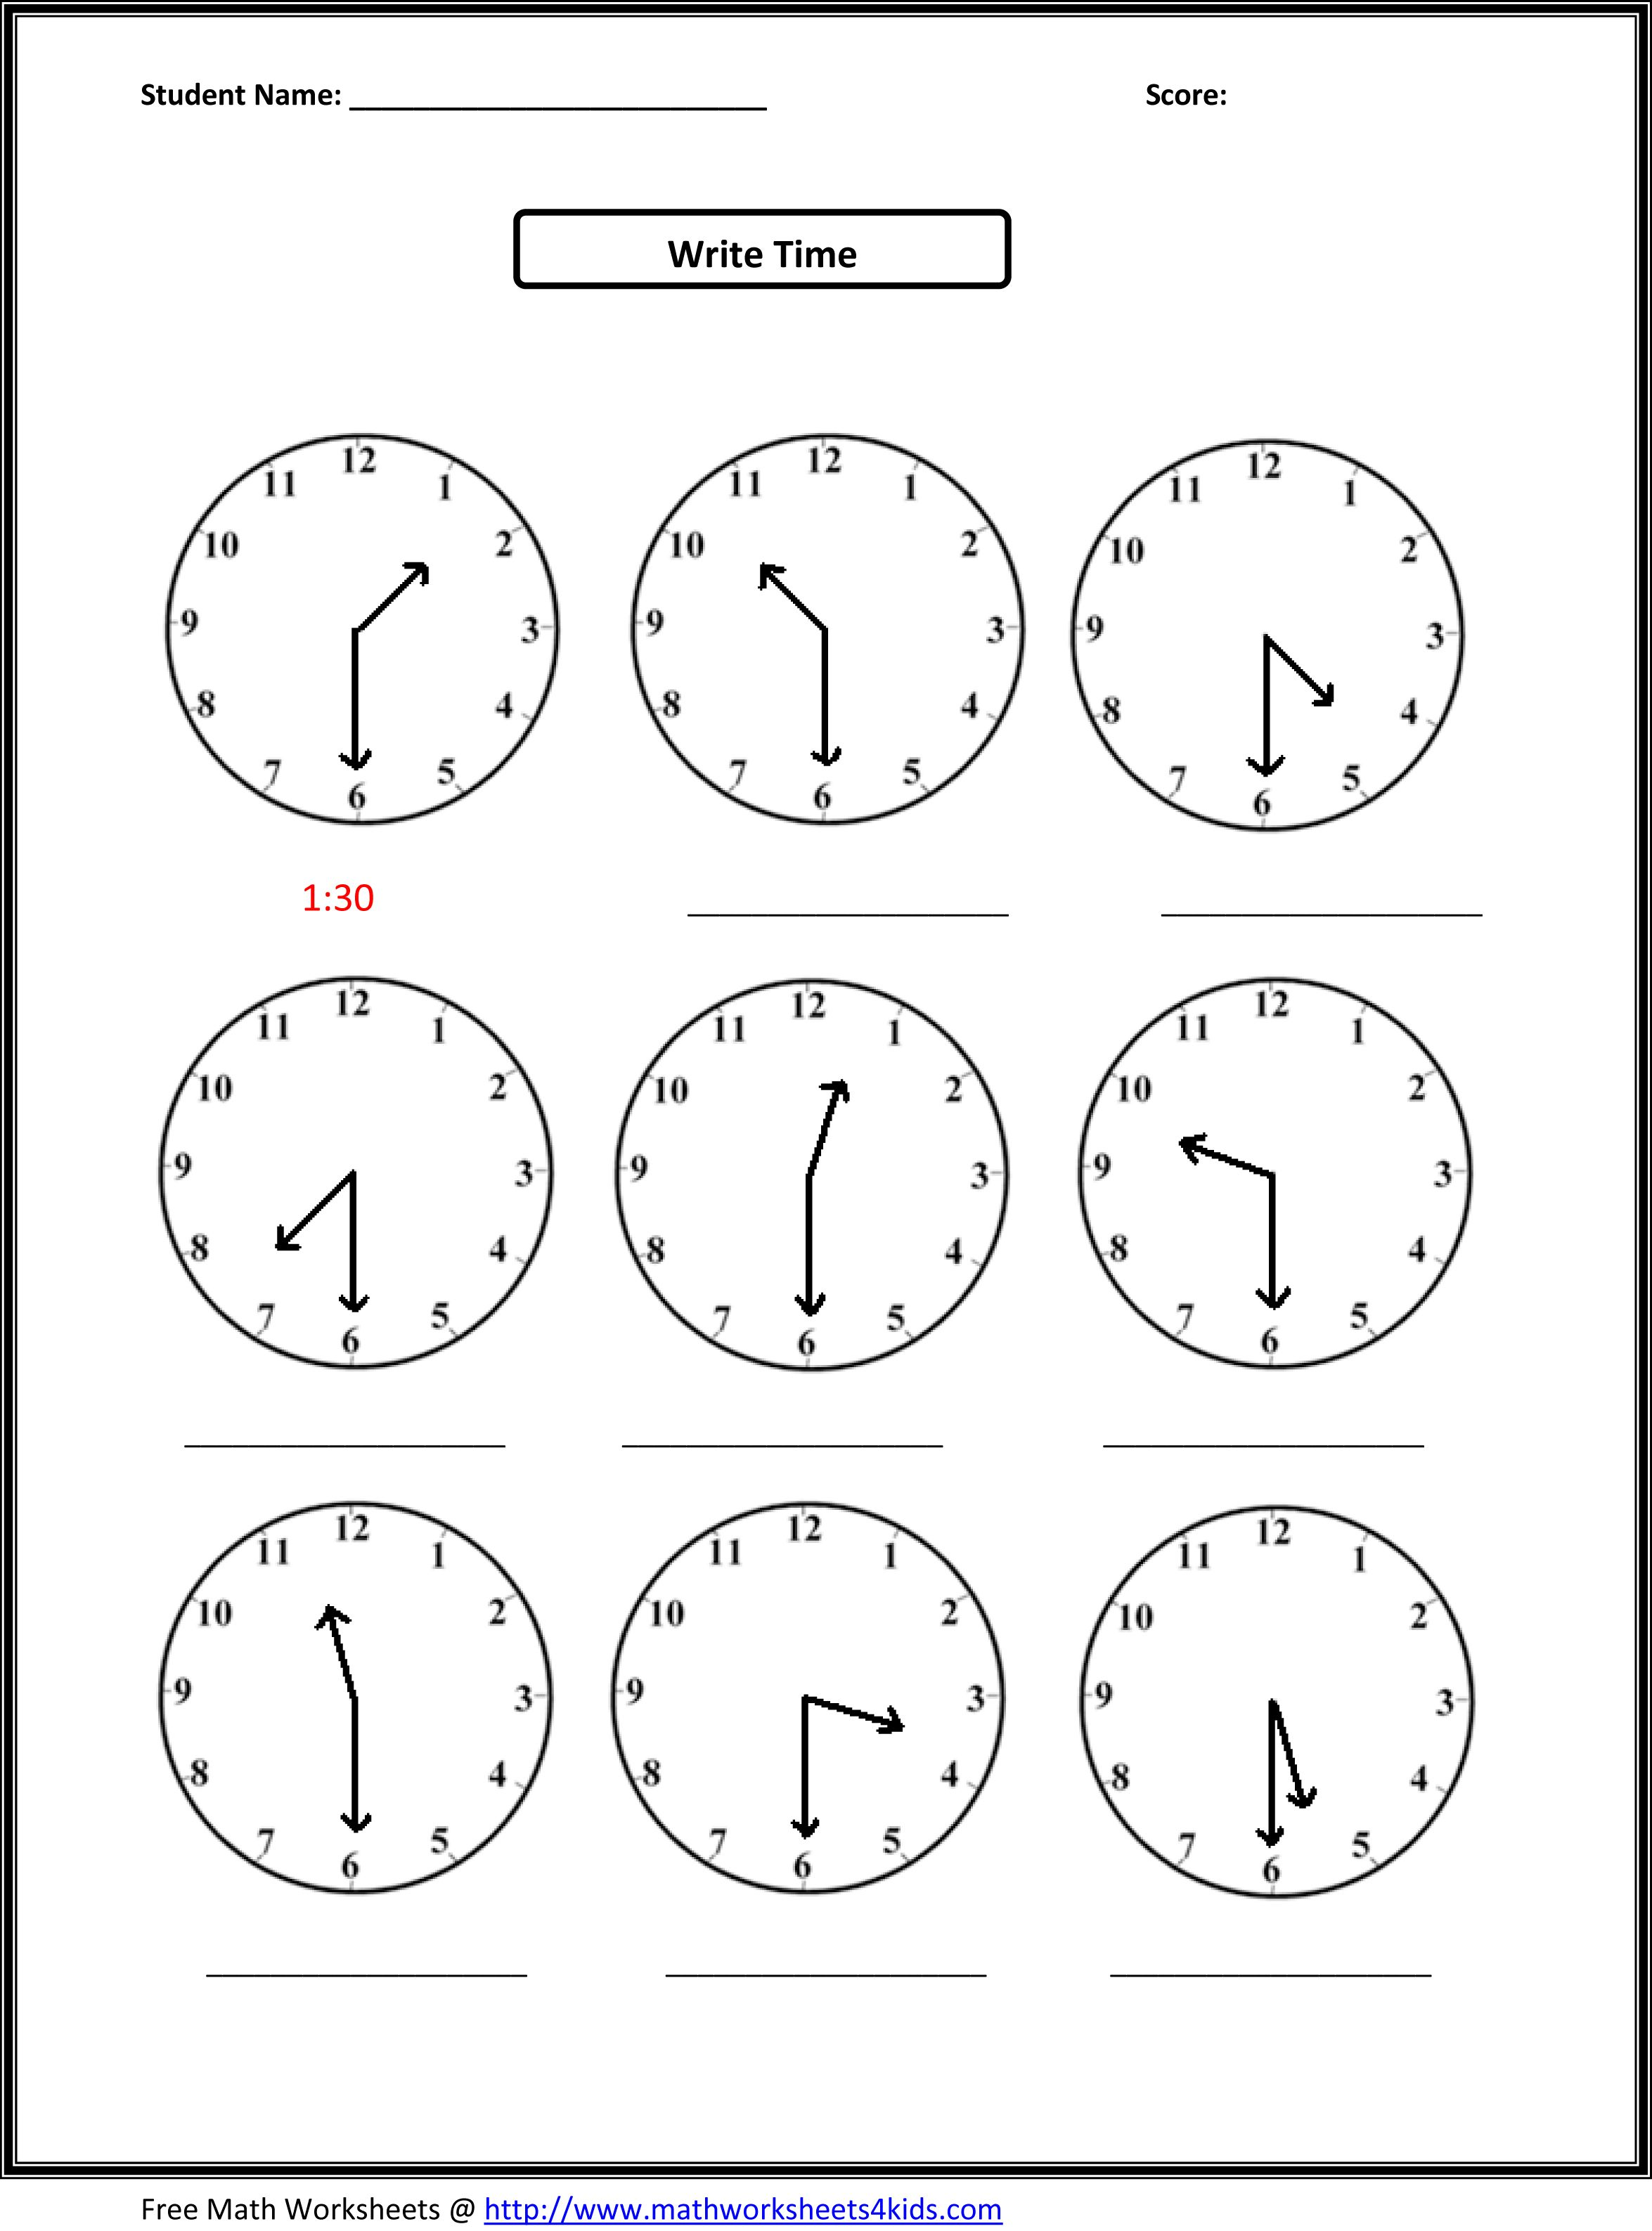 Proatmealus  Surprising Worksheet On Time For Grade   Reocurent With Glamorous Free Printable Telling Time Worksheets Nd Grade  Reocurent With Easy On The Eye Grade  Measurement Worksheets Also Inverse Trigonometric Functions Problems Worksheets In Addition Coordinate System Worksheet And Literacy Worksheets Year  As Well As Emotional Worksheets Additionally Equality And Diversity Worksheets From Reocurentcom With Proatmealus  Glamorous Worksheet On Time For Grade   Reocurent With Easy On The Eye Free Printable Telling Time Worksheets Nd Grade  Reocurent And Surprising Grade  Measurement Worksheets Also Inverse Trigonometric Functions Problems Worksheets In Addition Coordinate System Worksheet From Reocurentcom